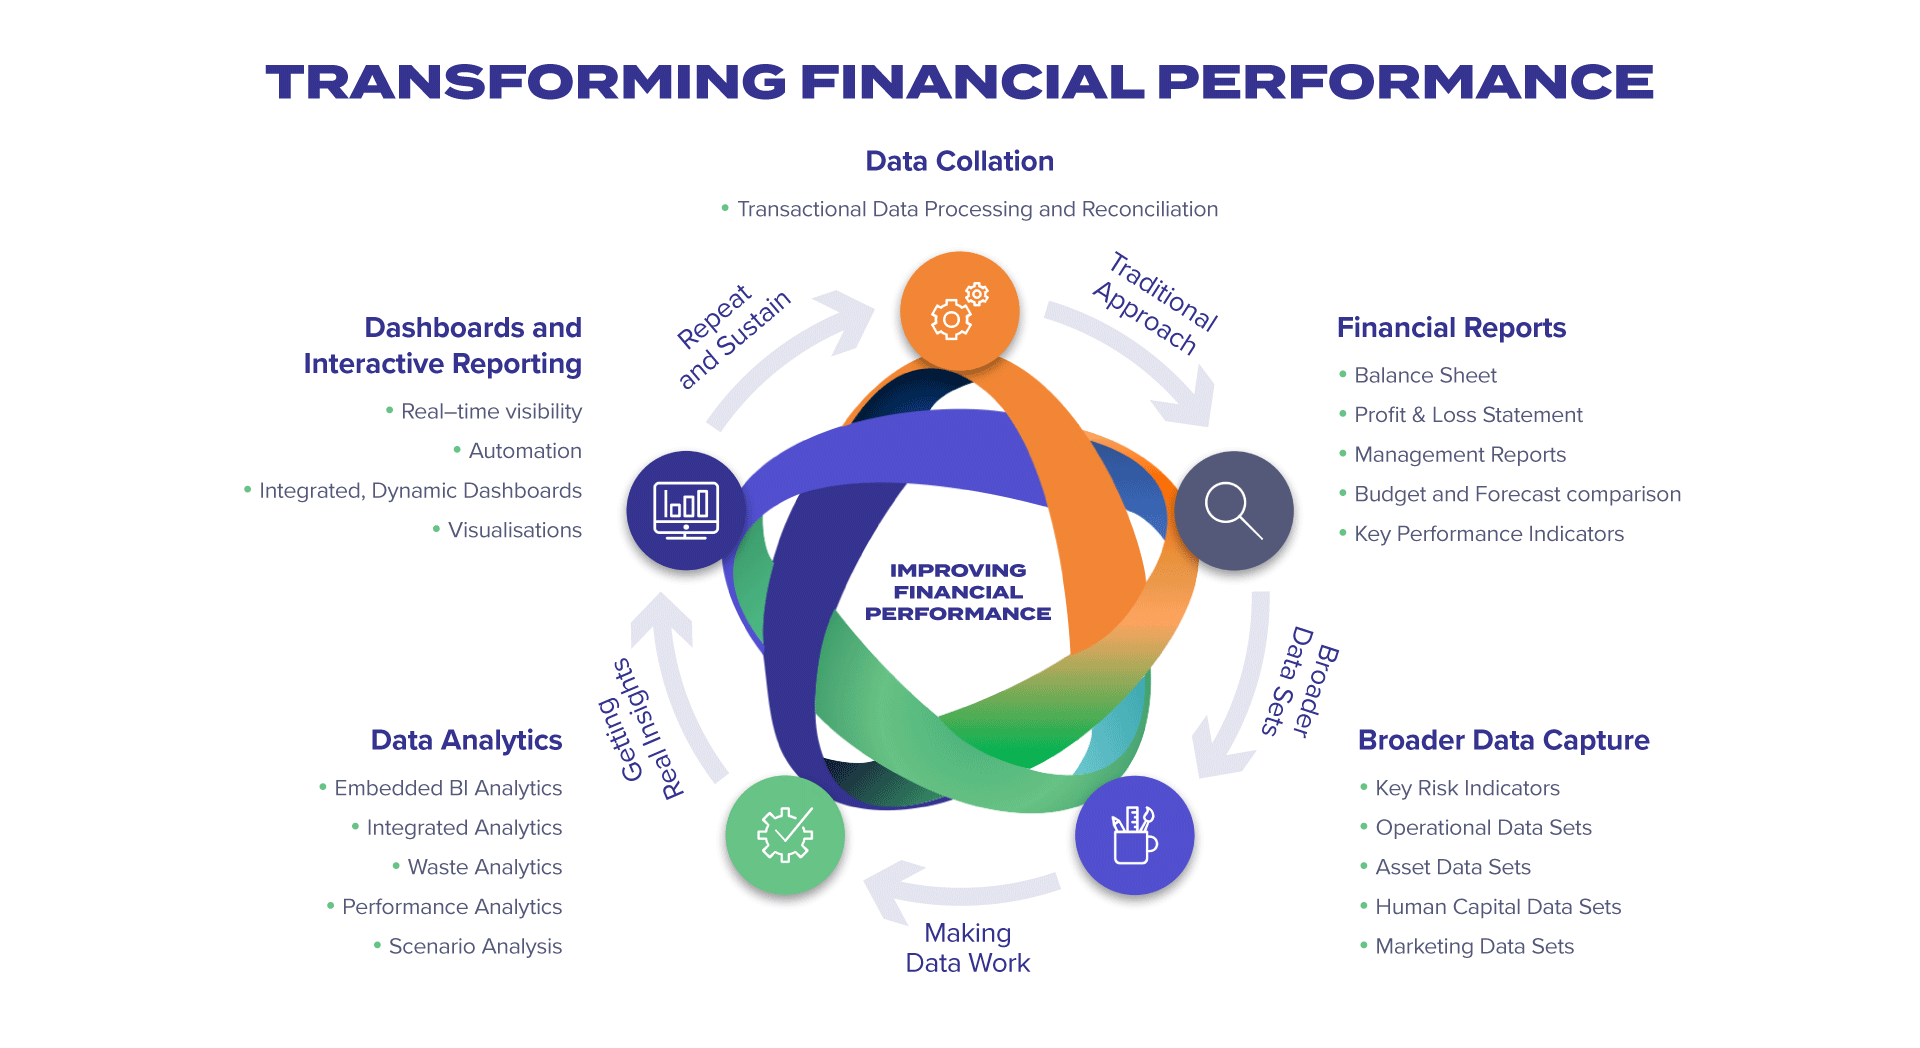 Transforming Financial Performance Flowchart